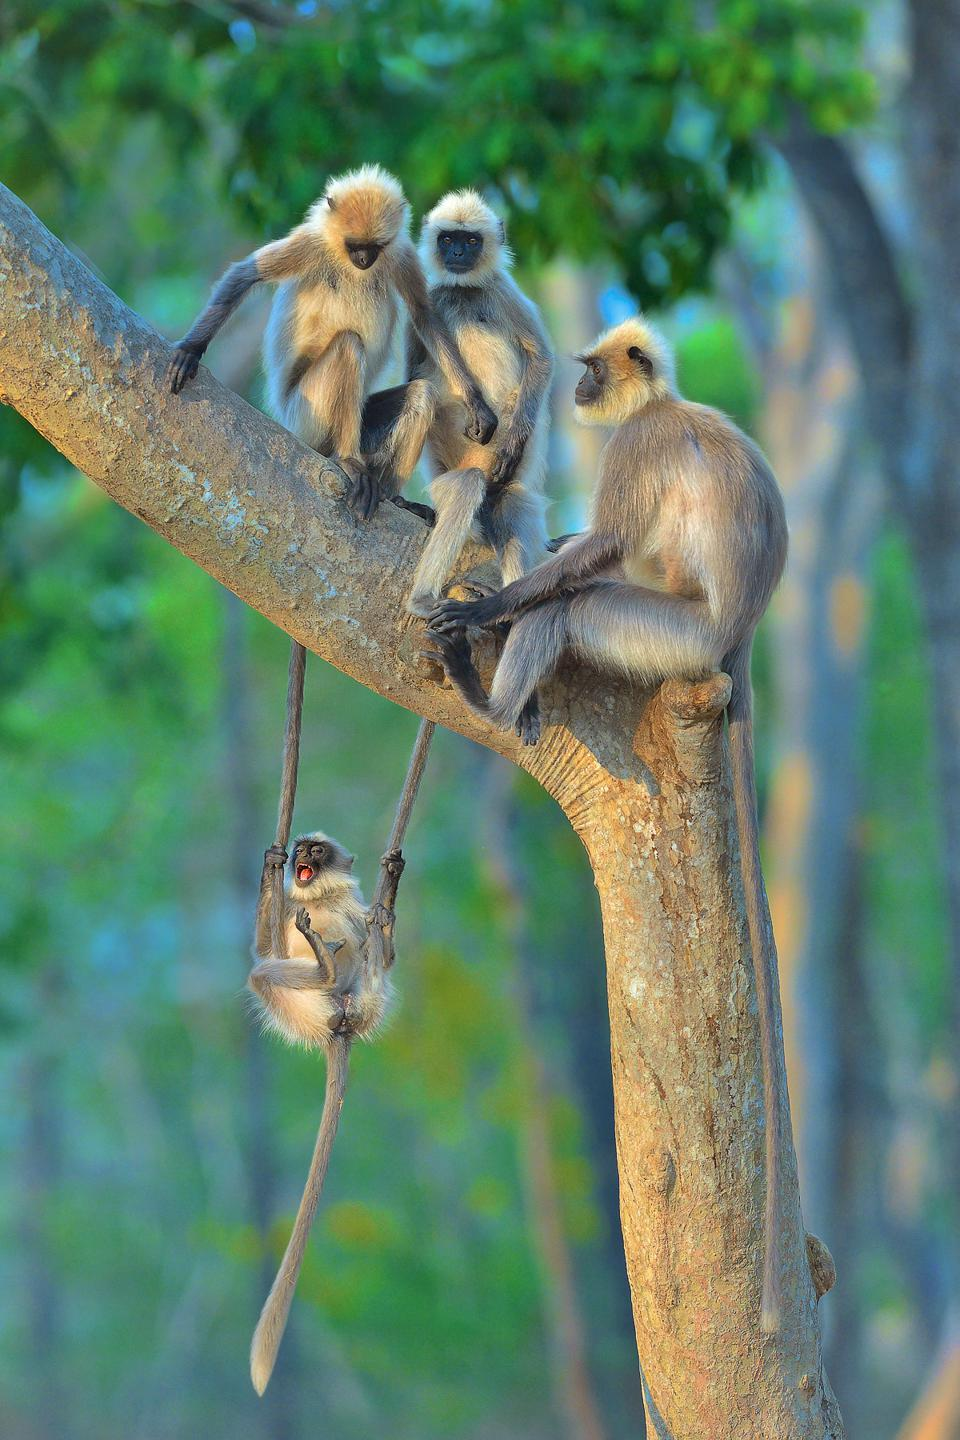 Funny Wild Animals photo competition: Langurs, in Kabini, India